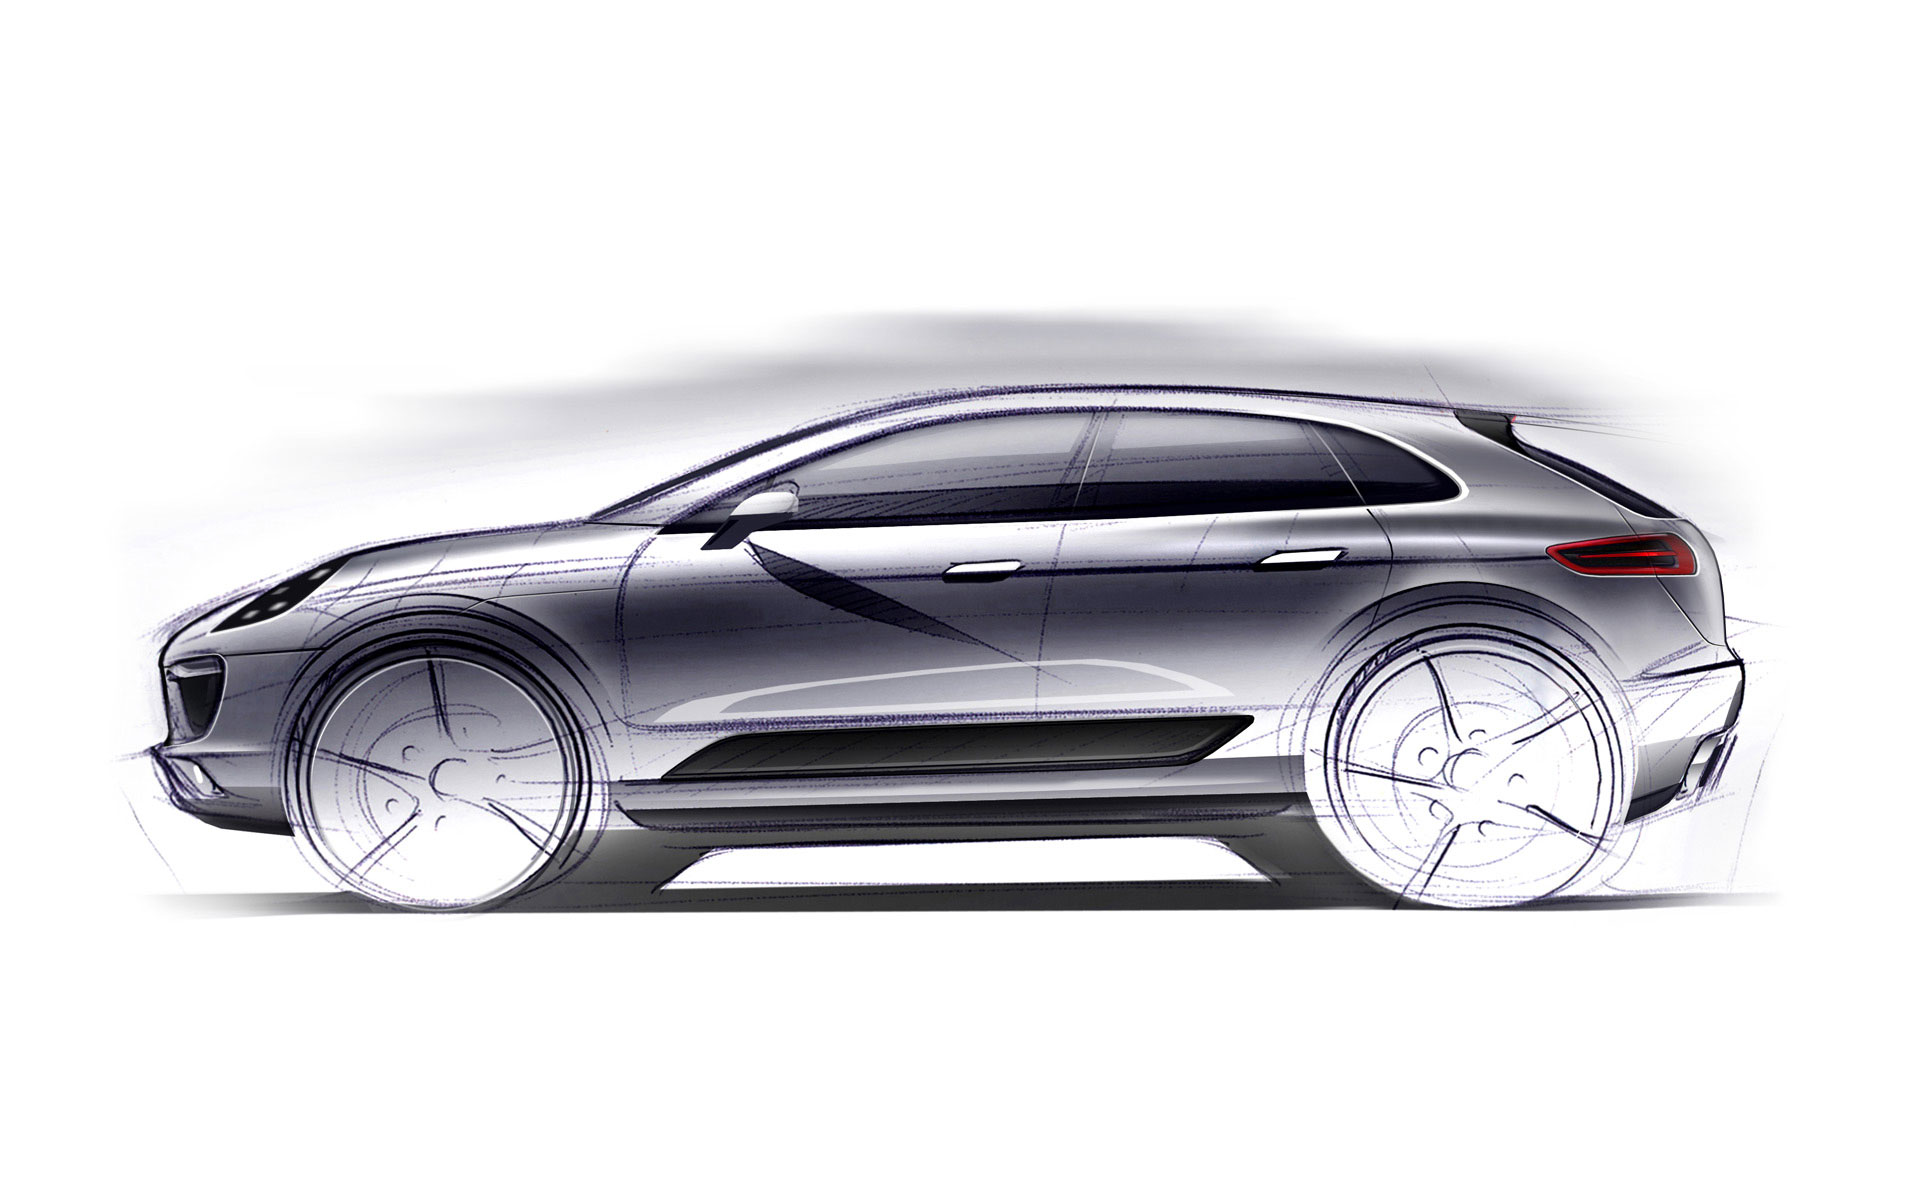 Porsche Releases a Teaser Sketch of Its New SUV: The Macan